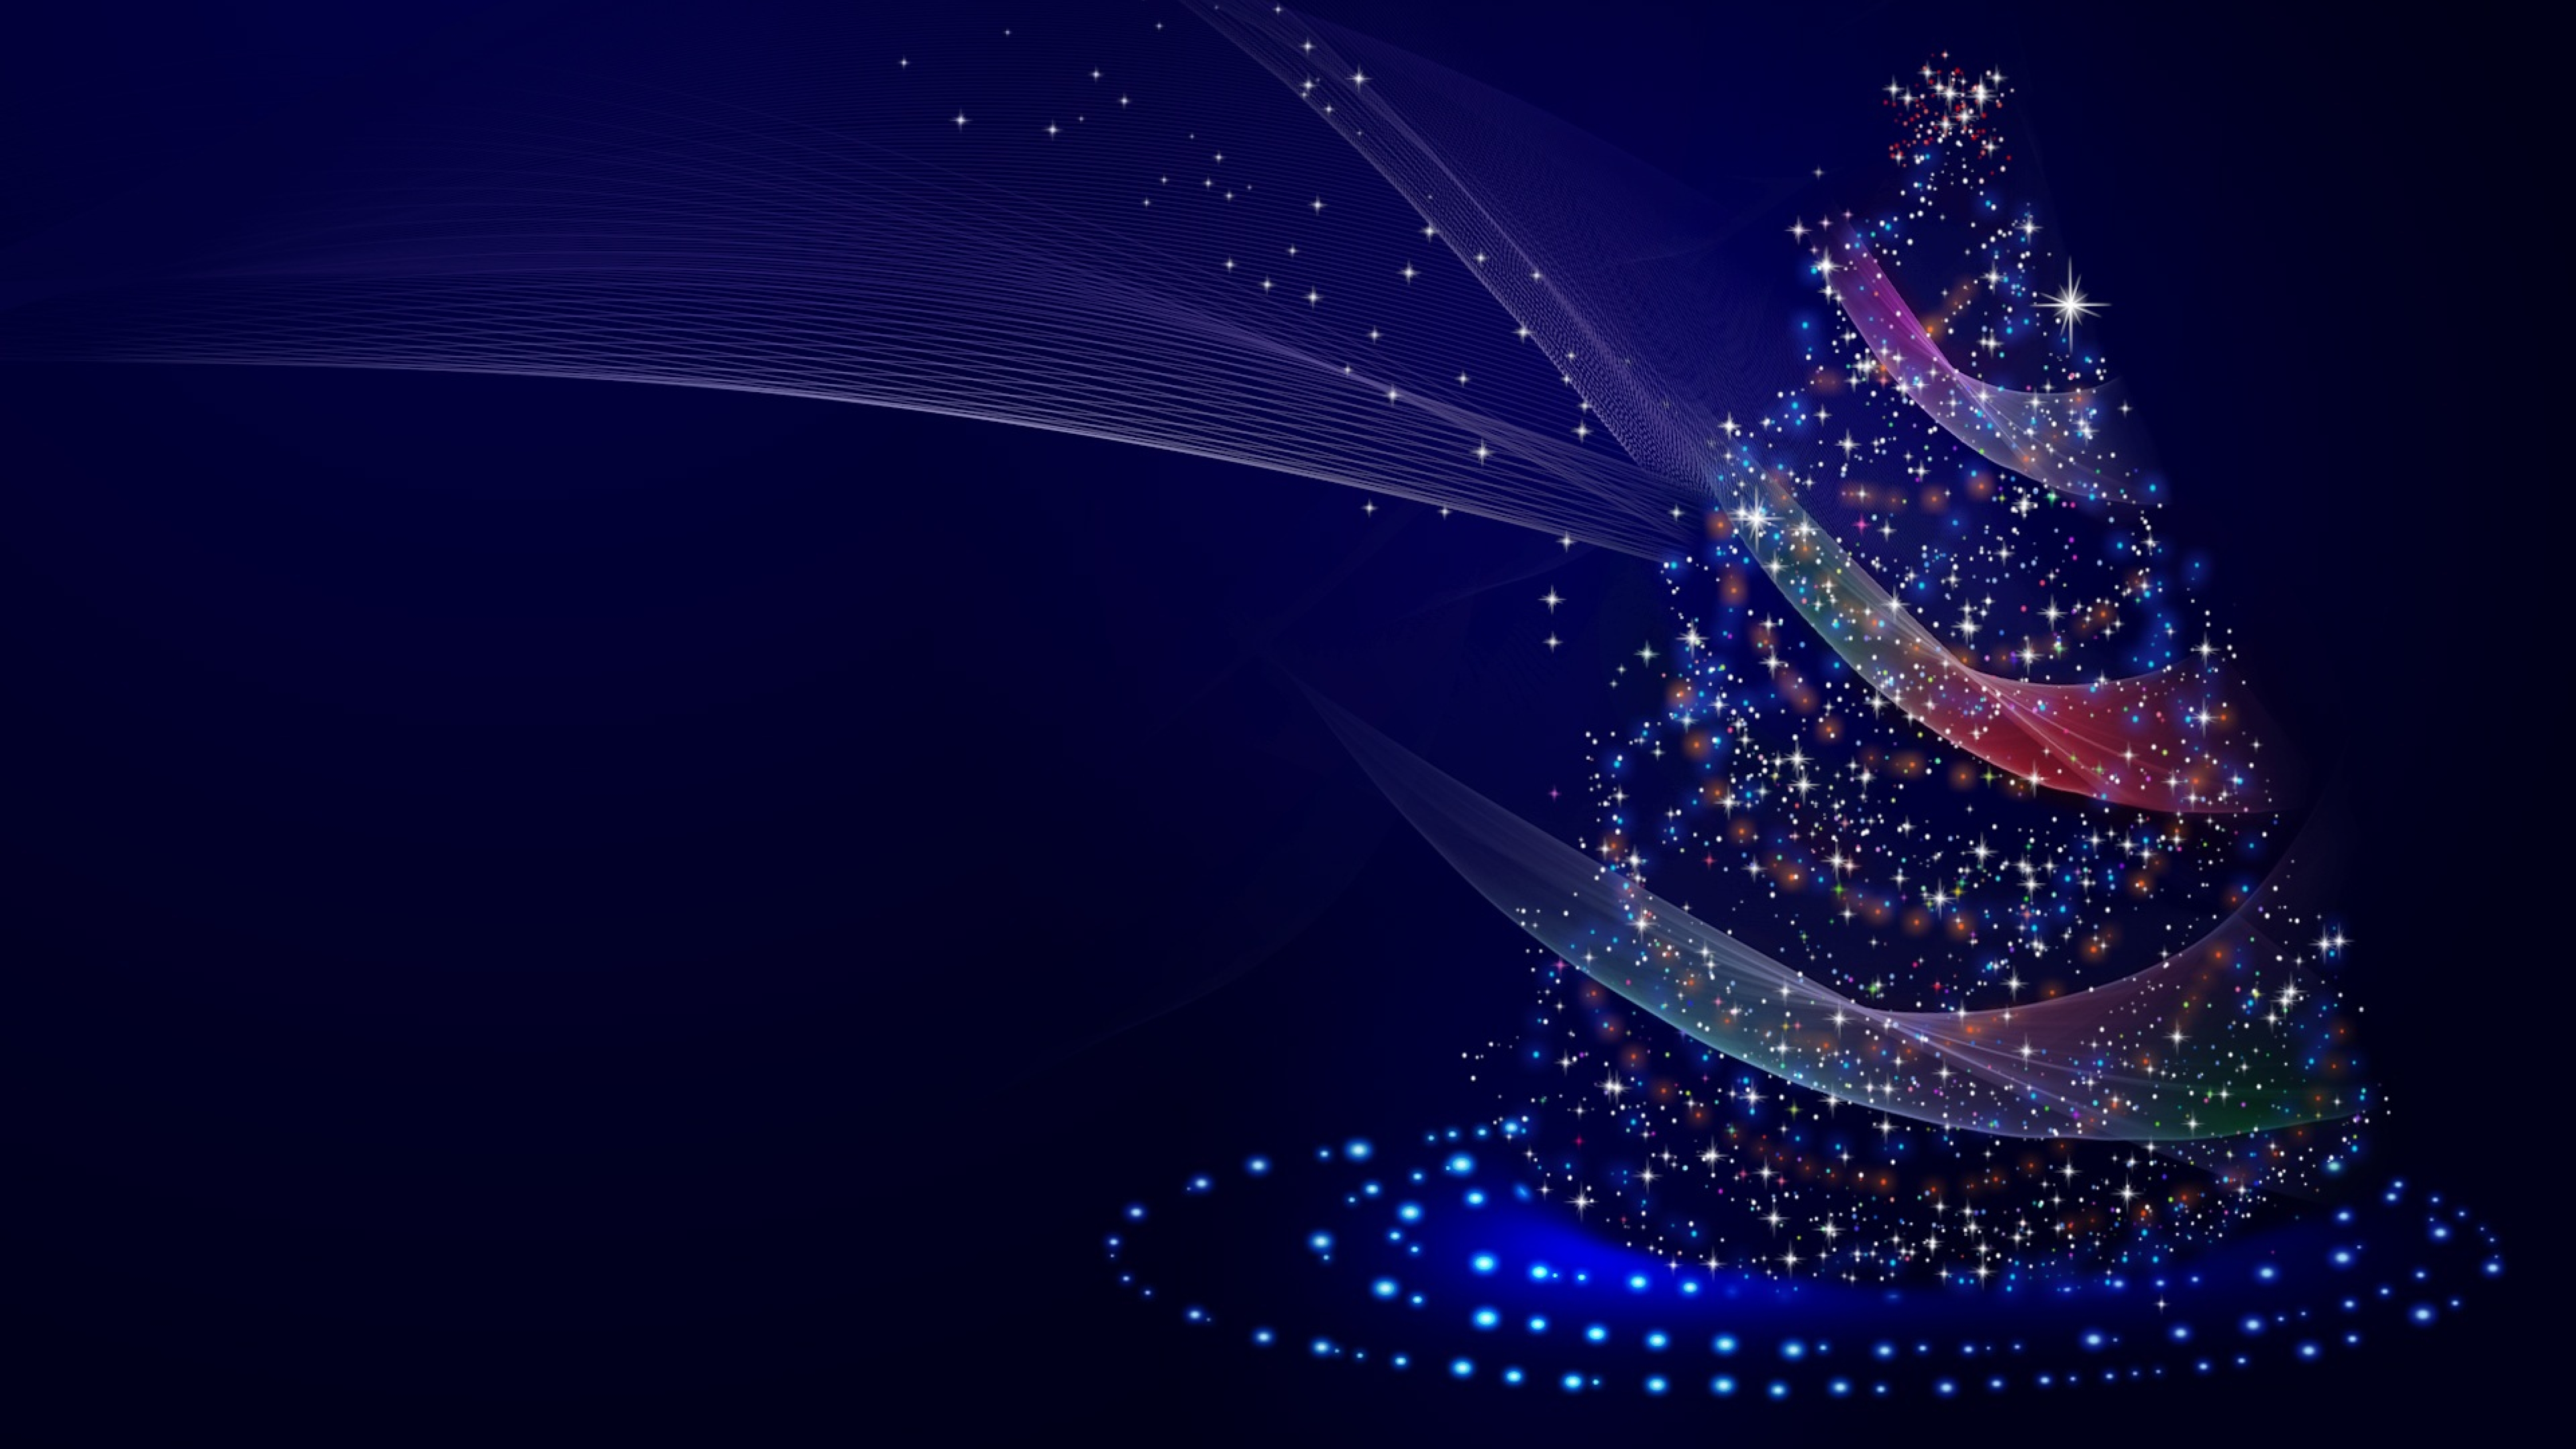 Download Artistic Blue Christmas Tree 480x854 Resolution